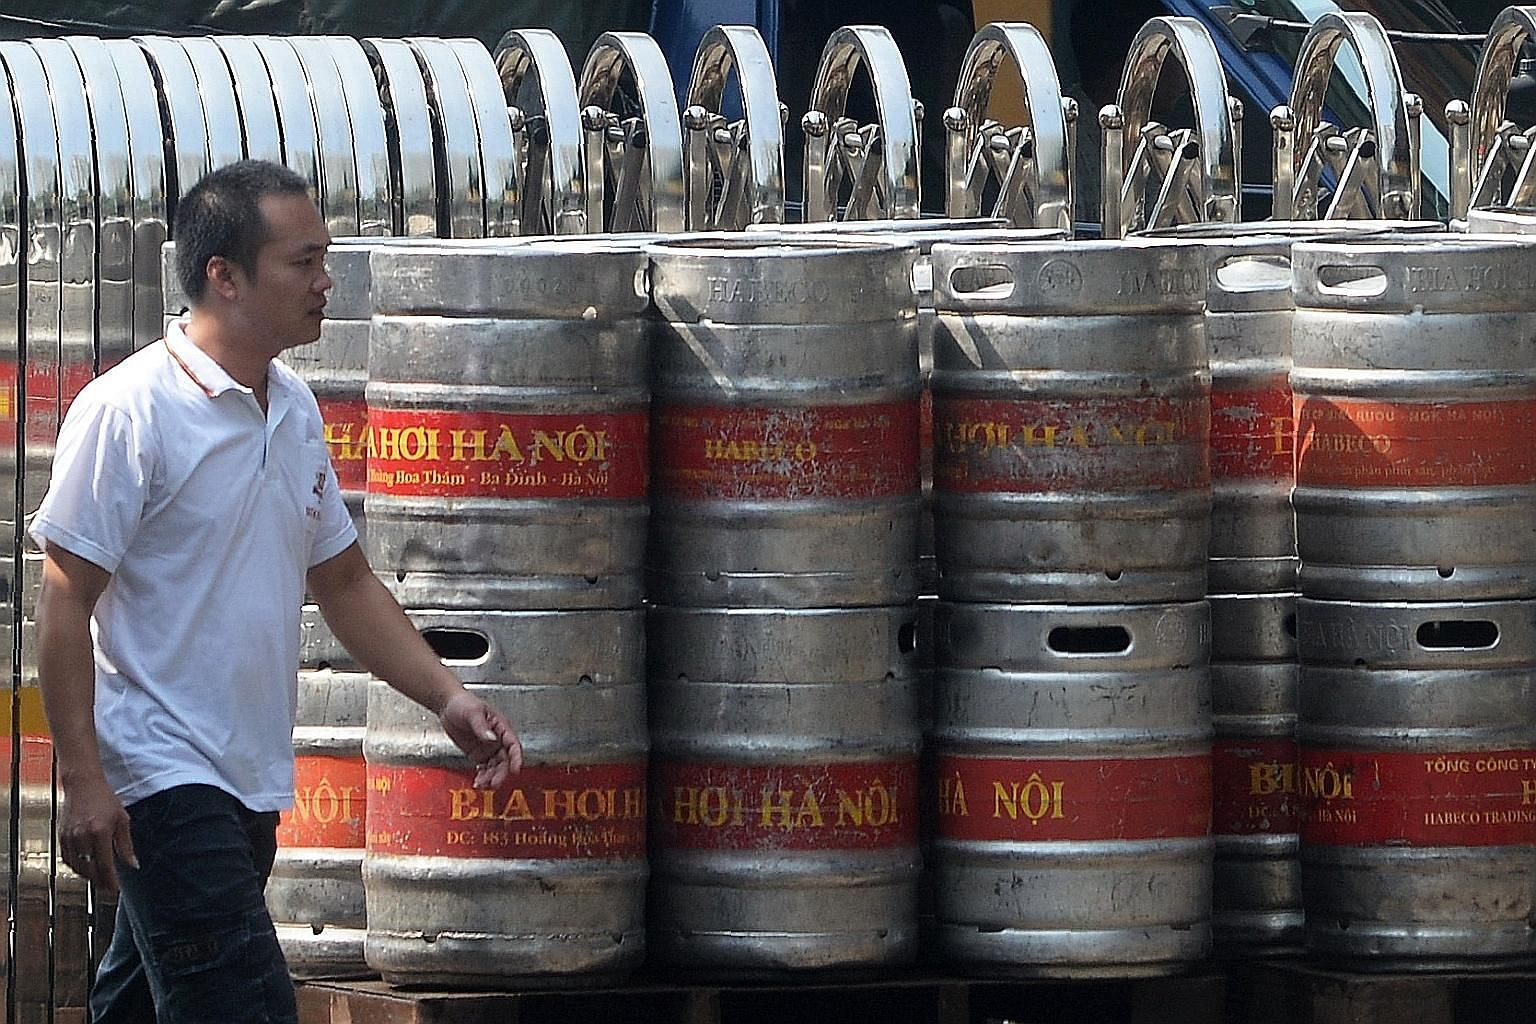 Kegs of beer at a brewery of the state-owned Hanoi Beer Alcohol Beverage Corp. To reduce its fiscal burden, Vietnam's government aims to raise billions of dollars by selling stakes in state-owned brewers.